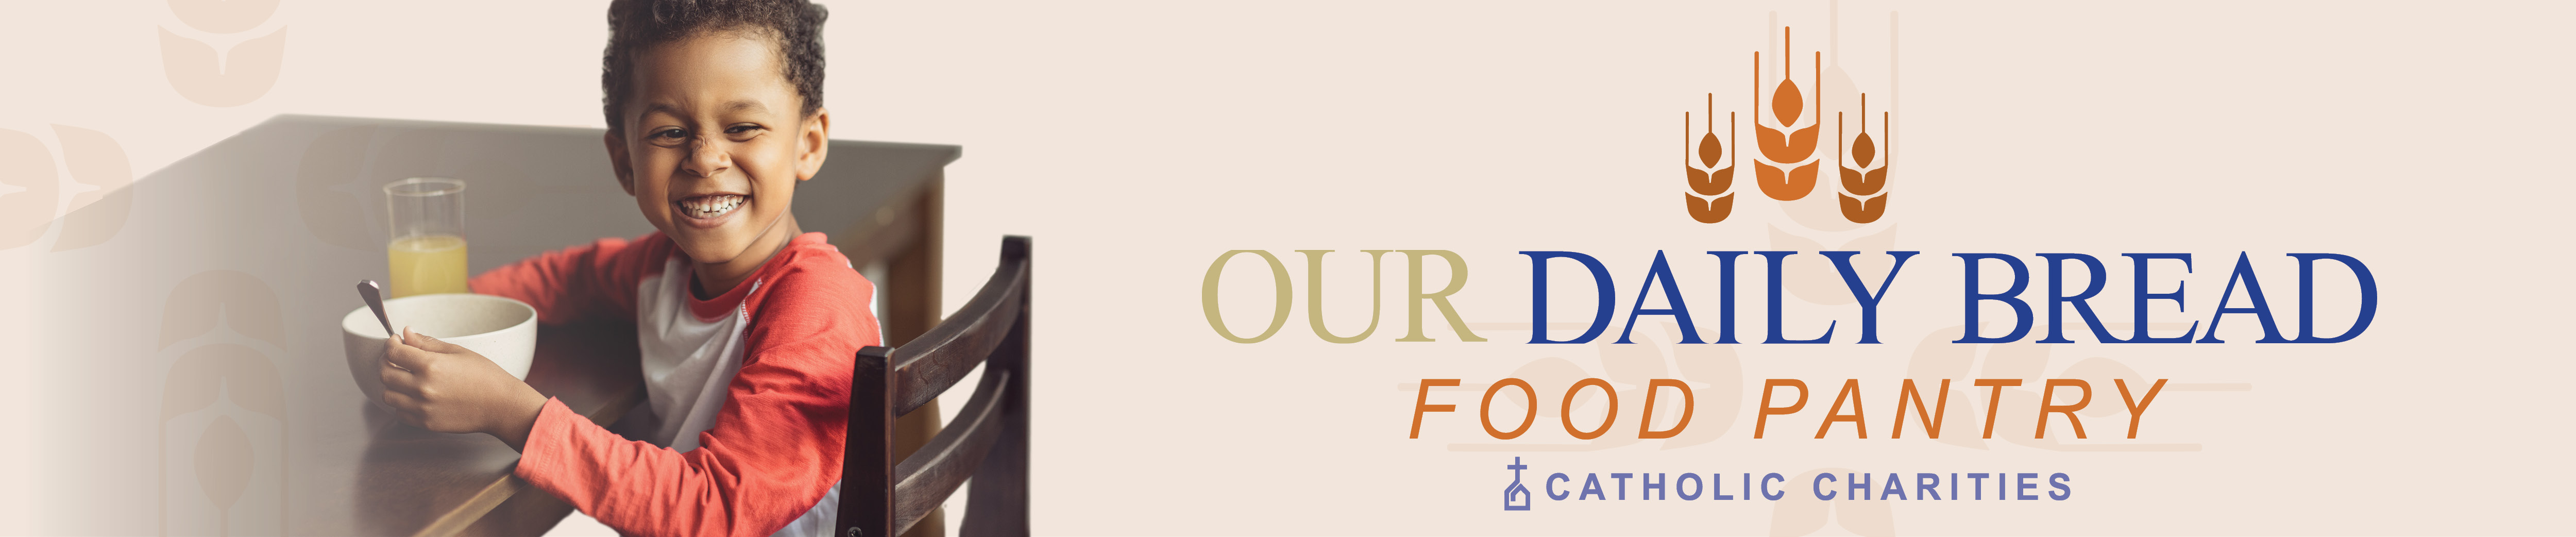 Donate to support Our Daily Bread Food Pantry at Catholic Charities